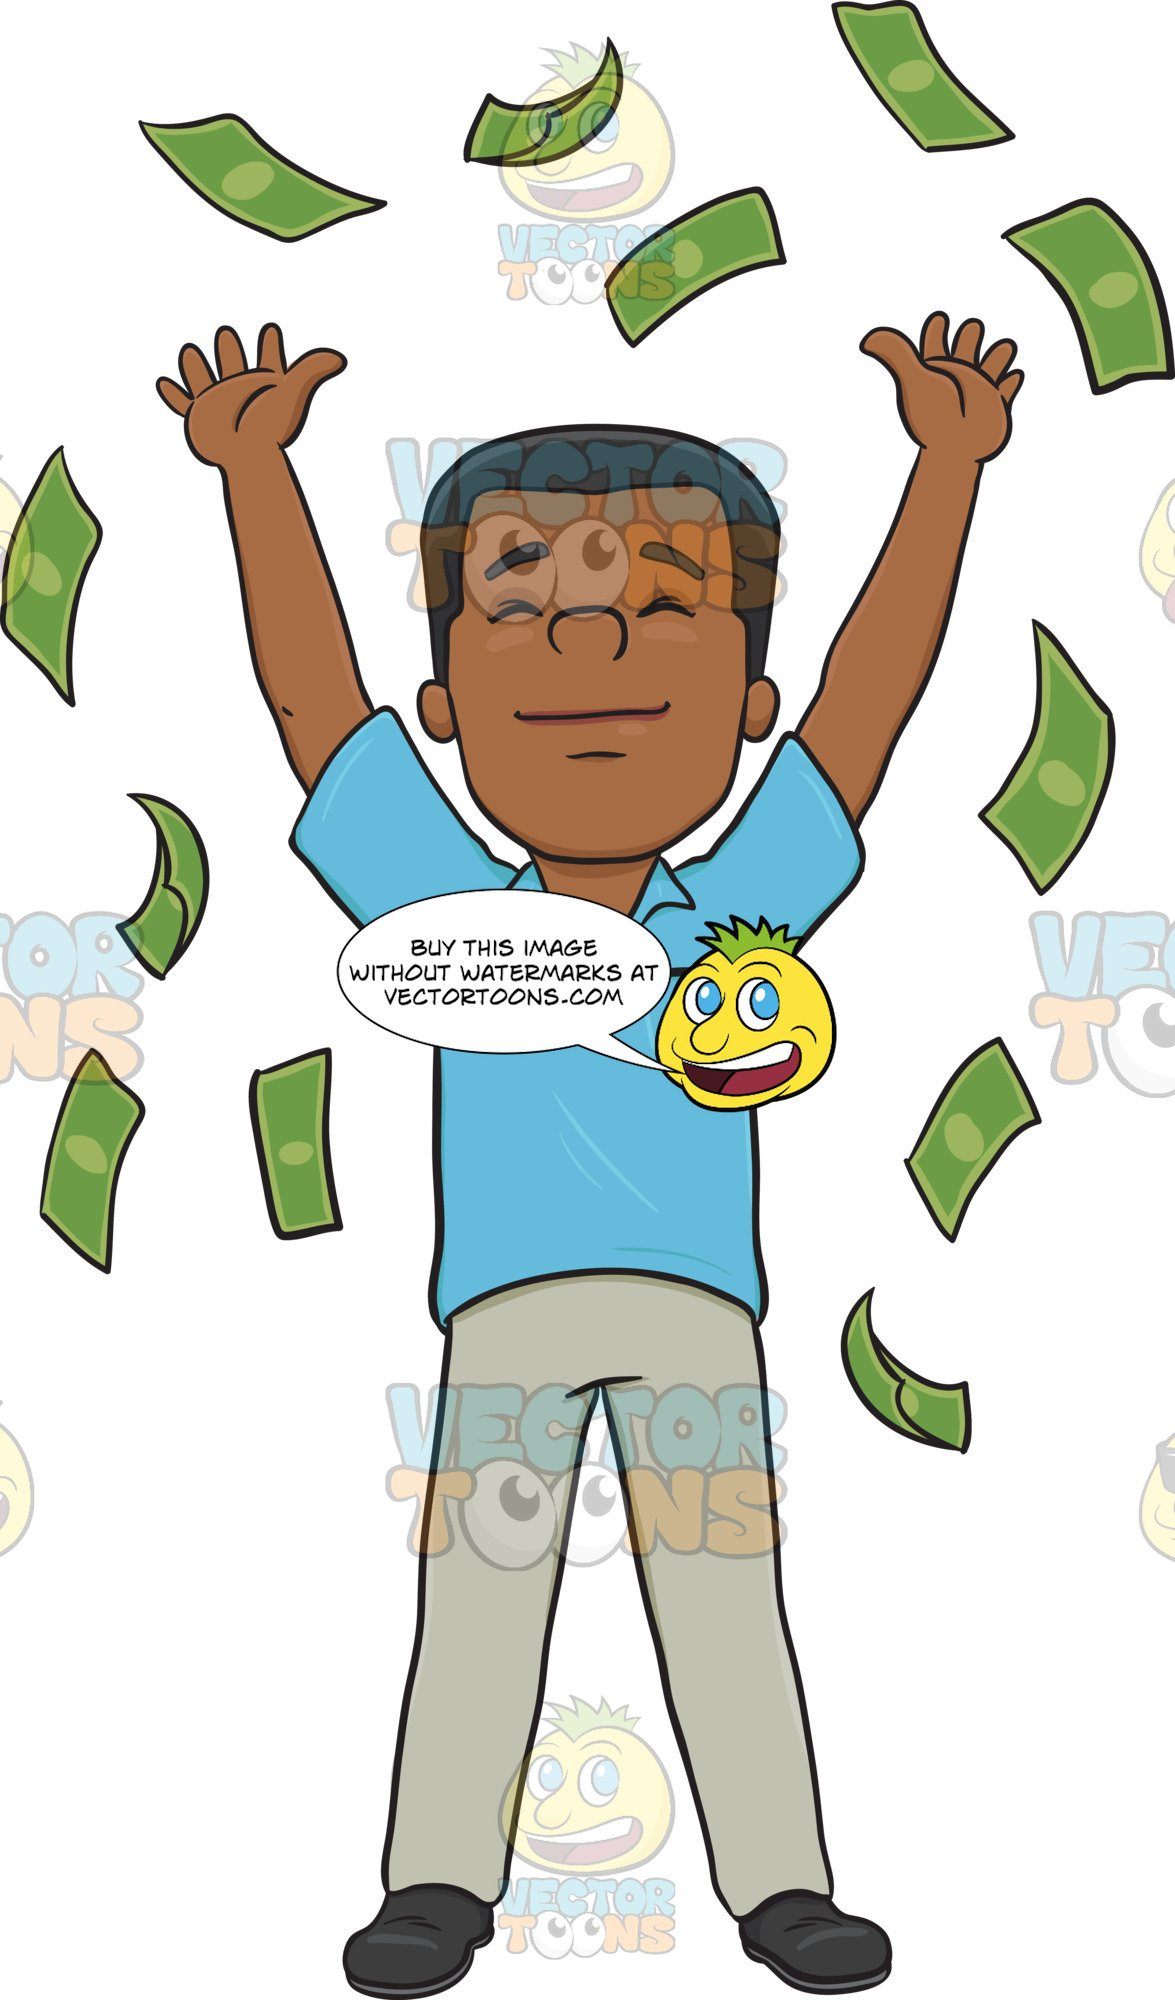 Clipart green man arms in air banner black and white download Satisfied Man Enjoying The Money Rain banner black and white download